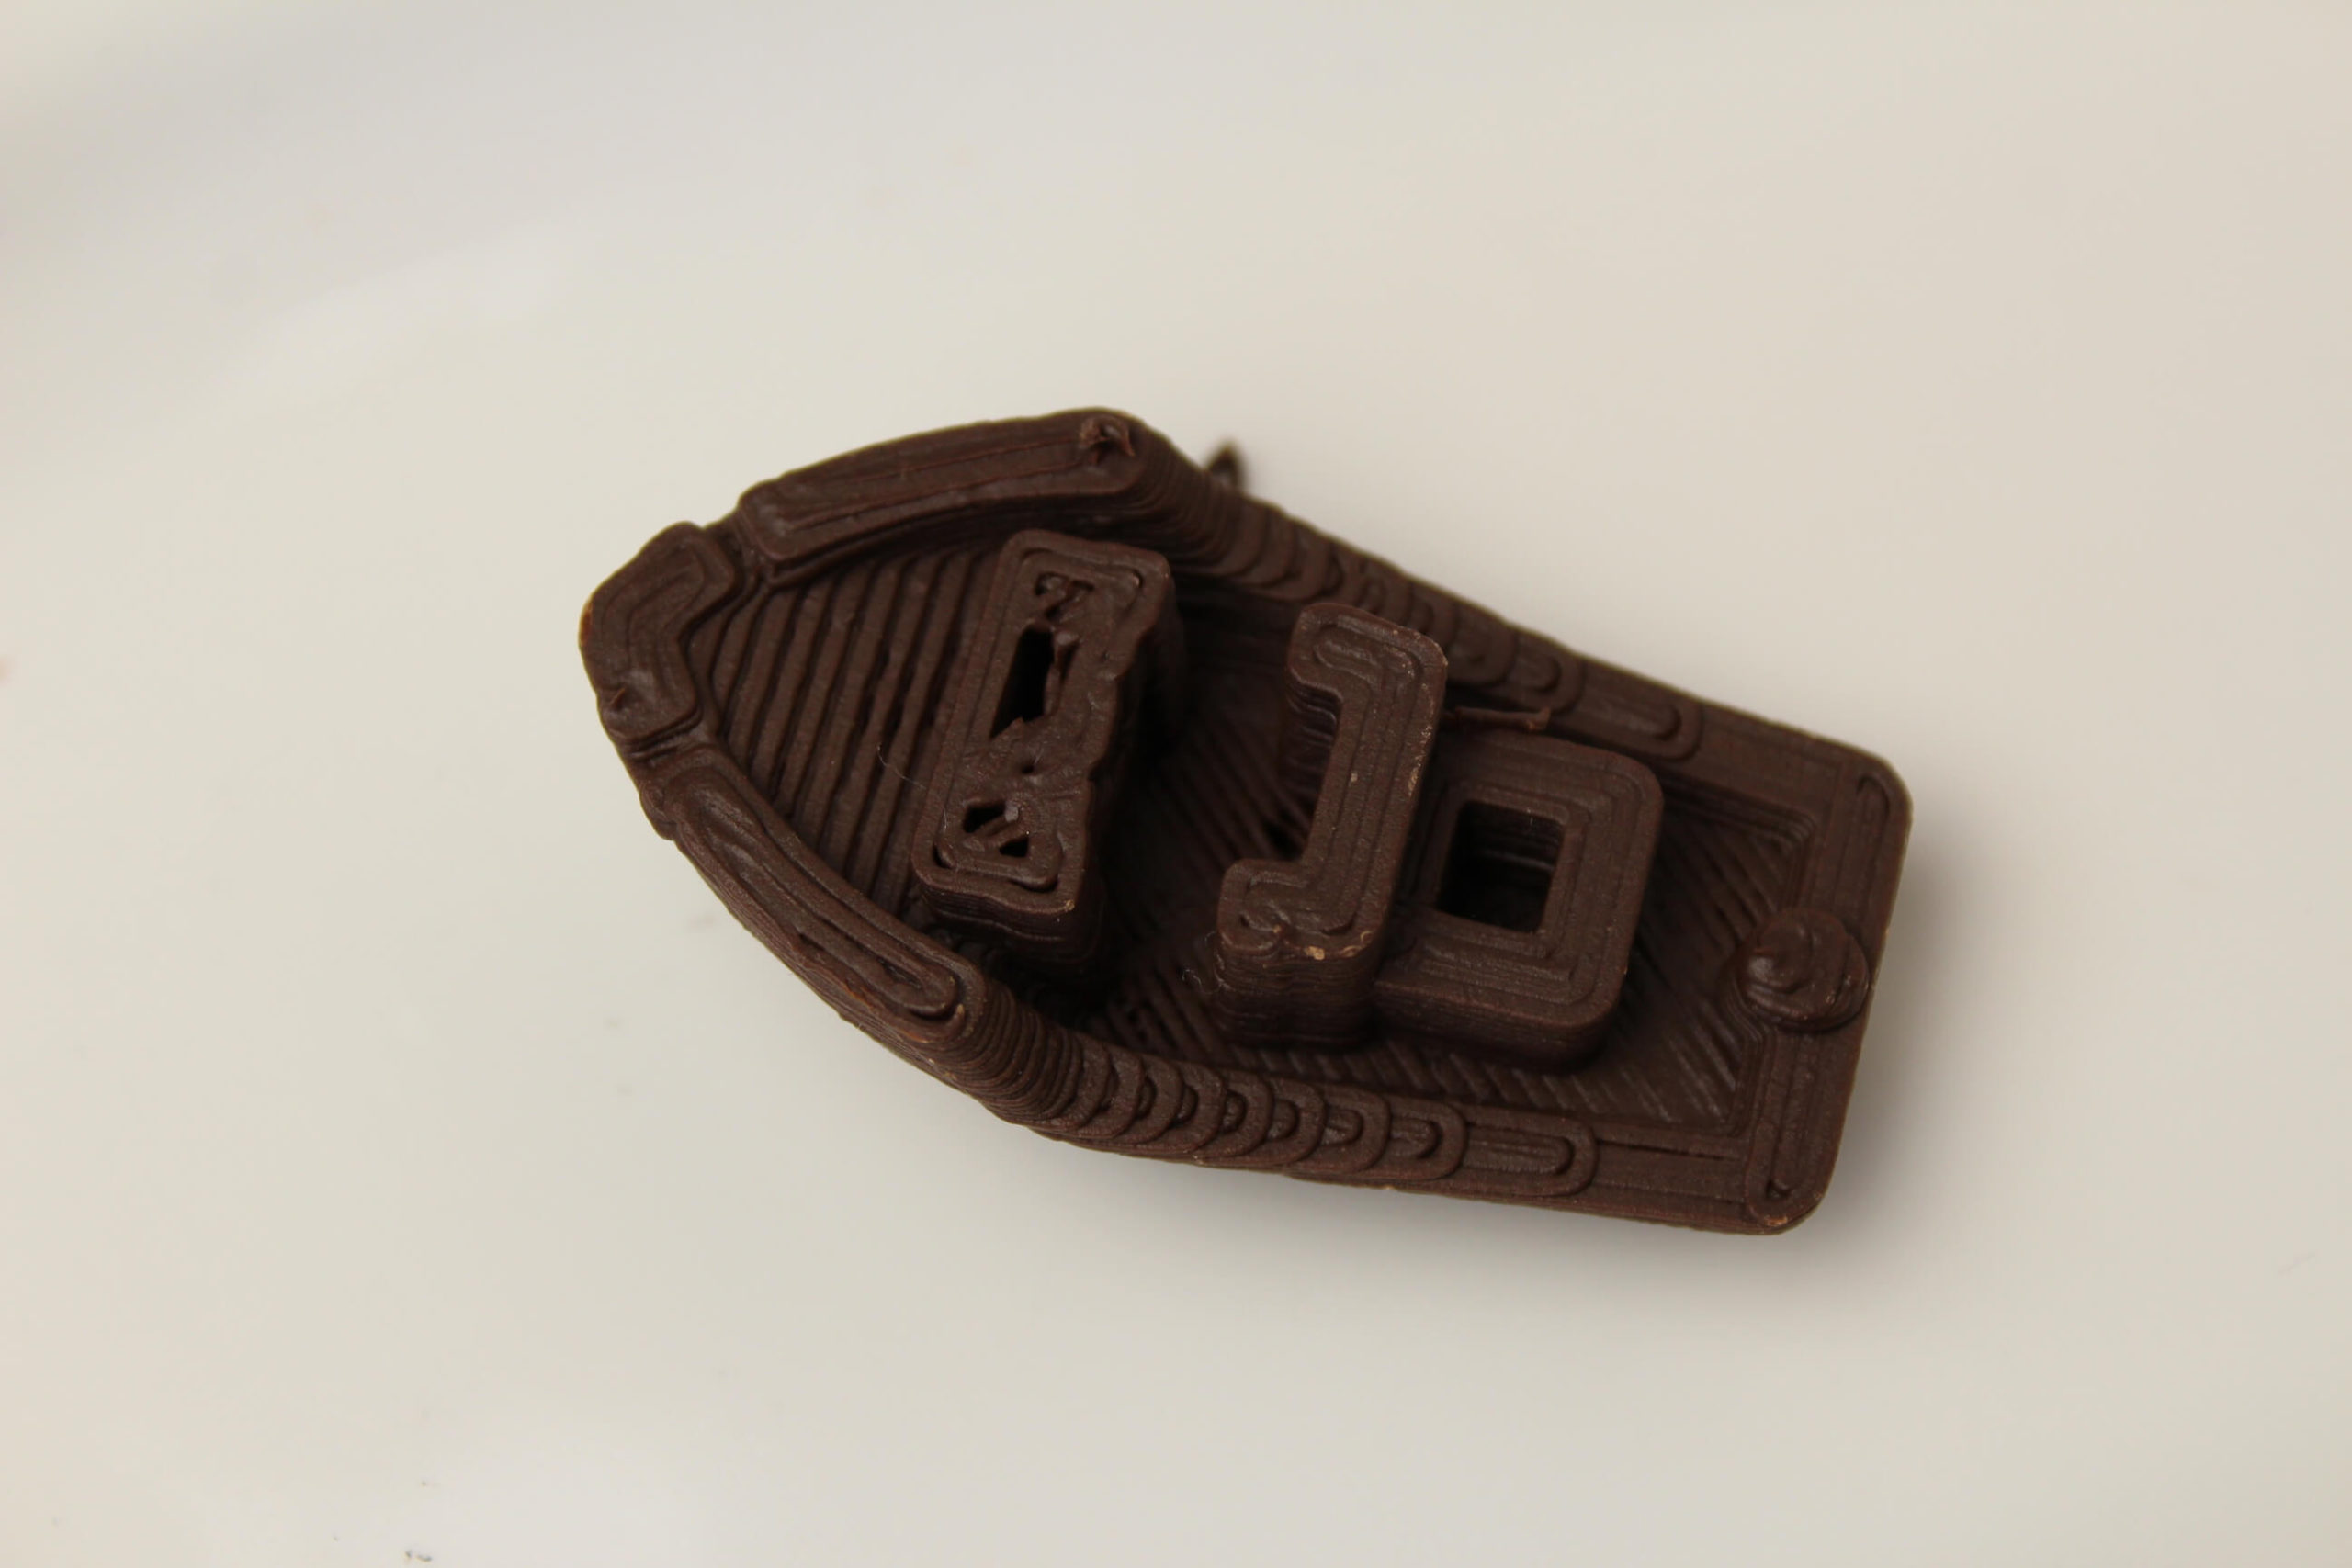 3D-Benchy-printed-on-Mycusini-Chocolate-3D-Printer-3